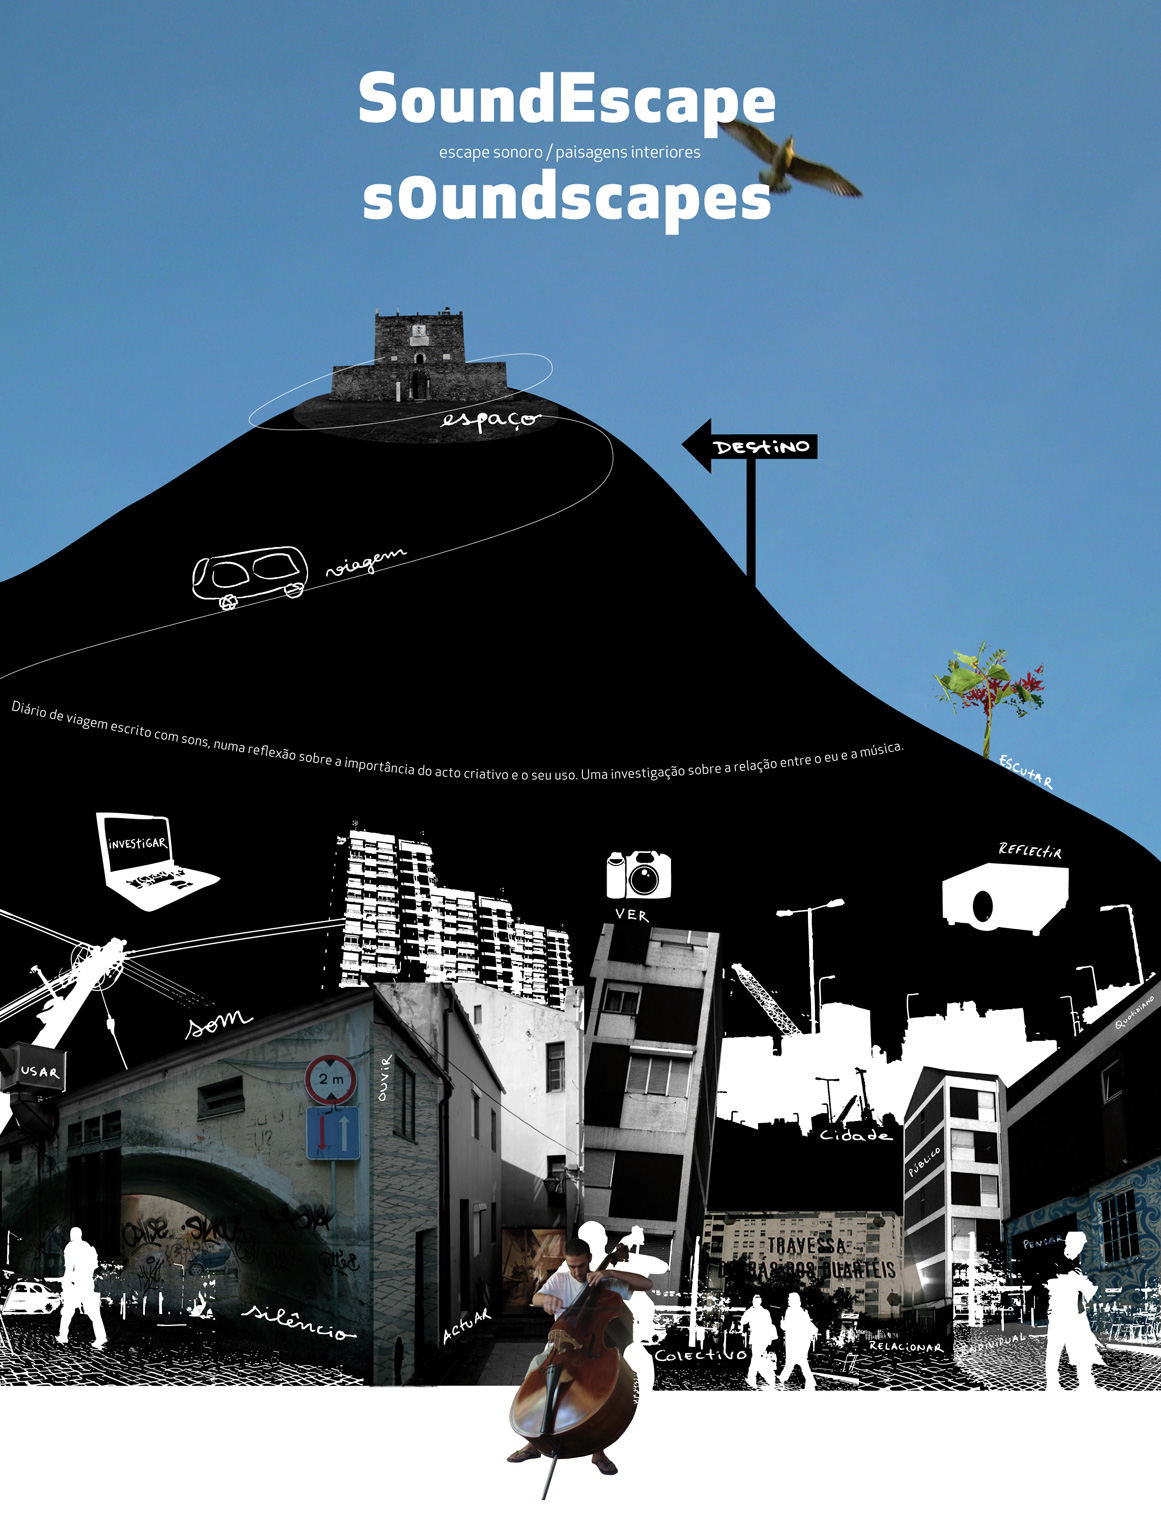 soundEscape-graph-s